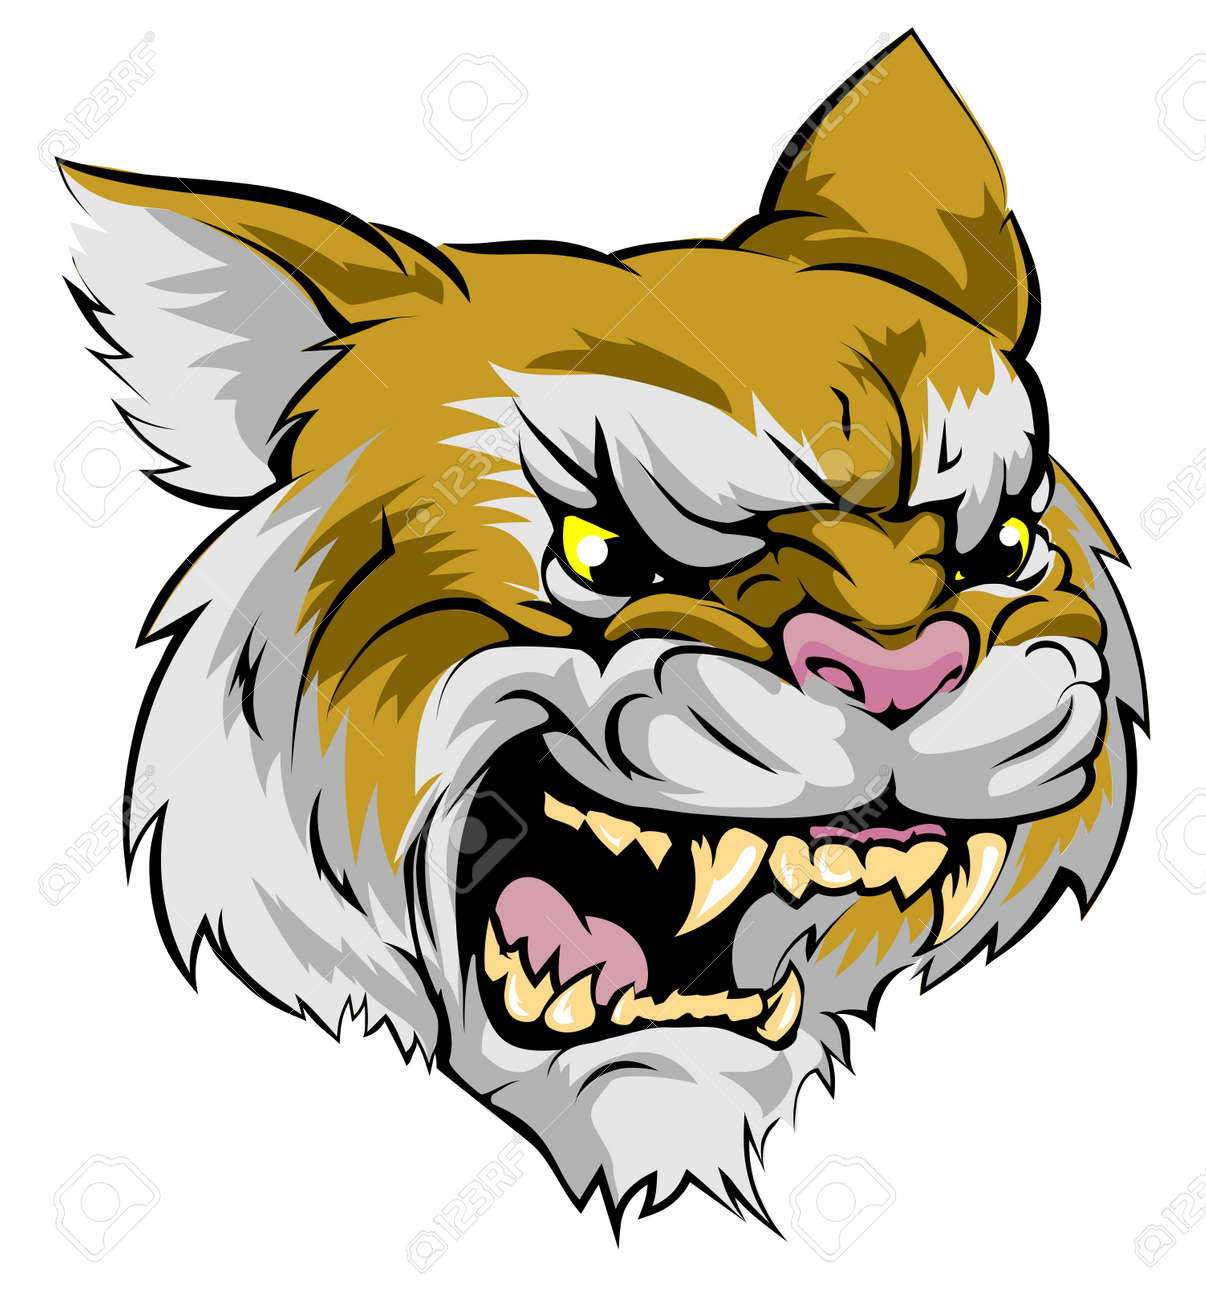 an illustration of a fierce wildcat animal character or sports rh 123rf com wildcat school mascot clipart wildcat school mascot clipart